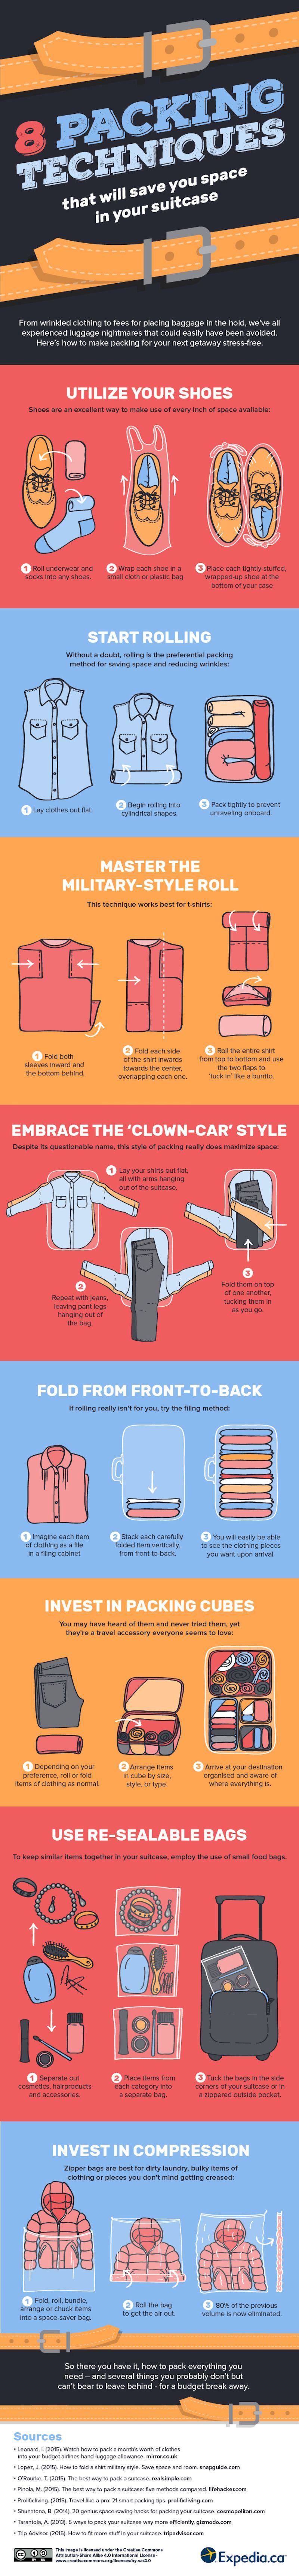 These Packing Techniques Save Space and Let You Carry More ...